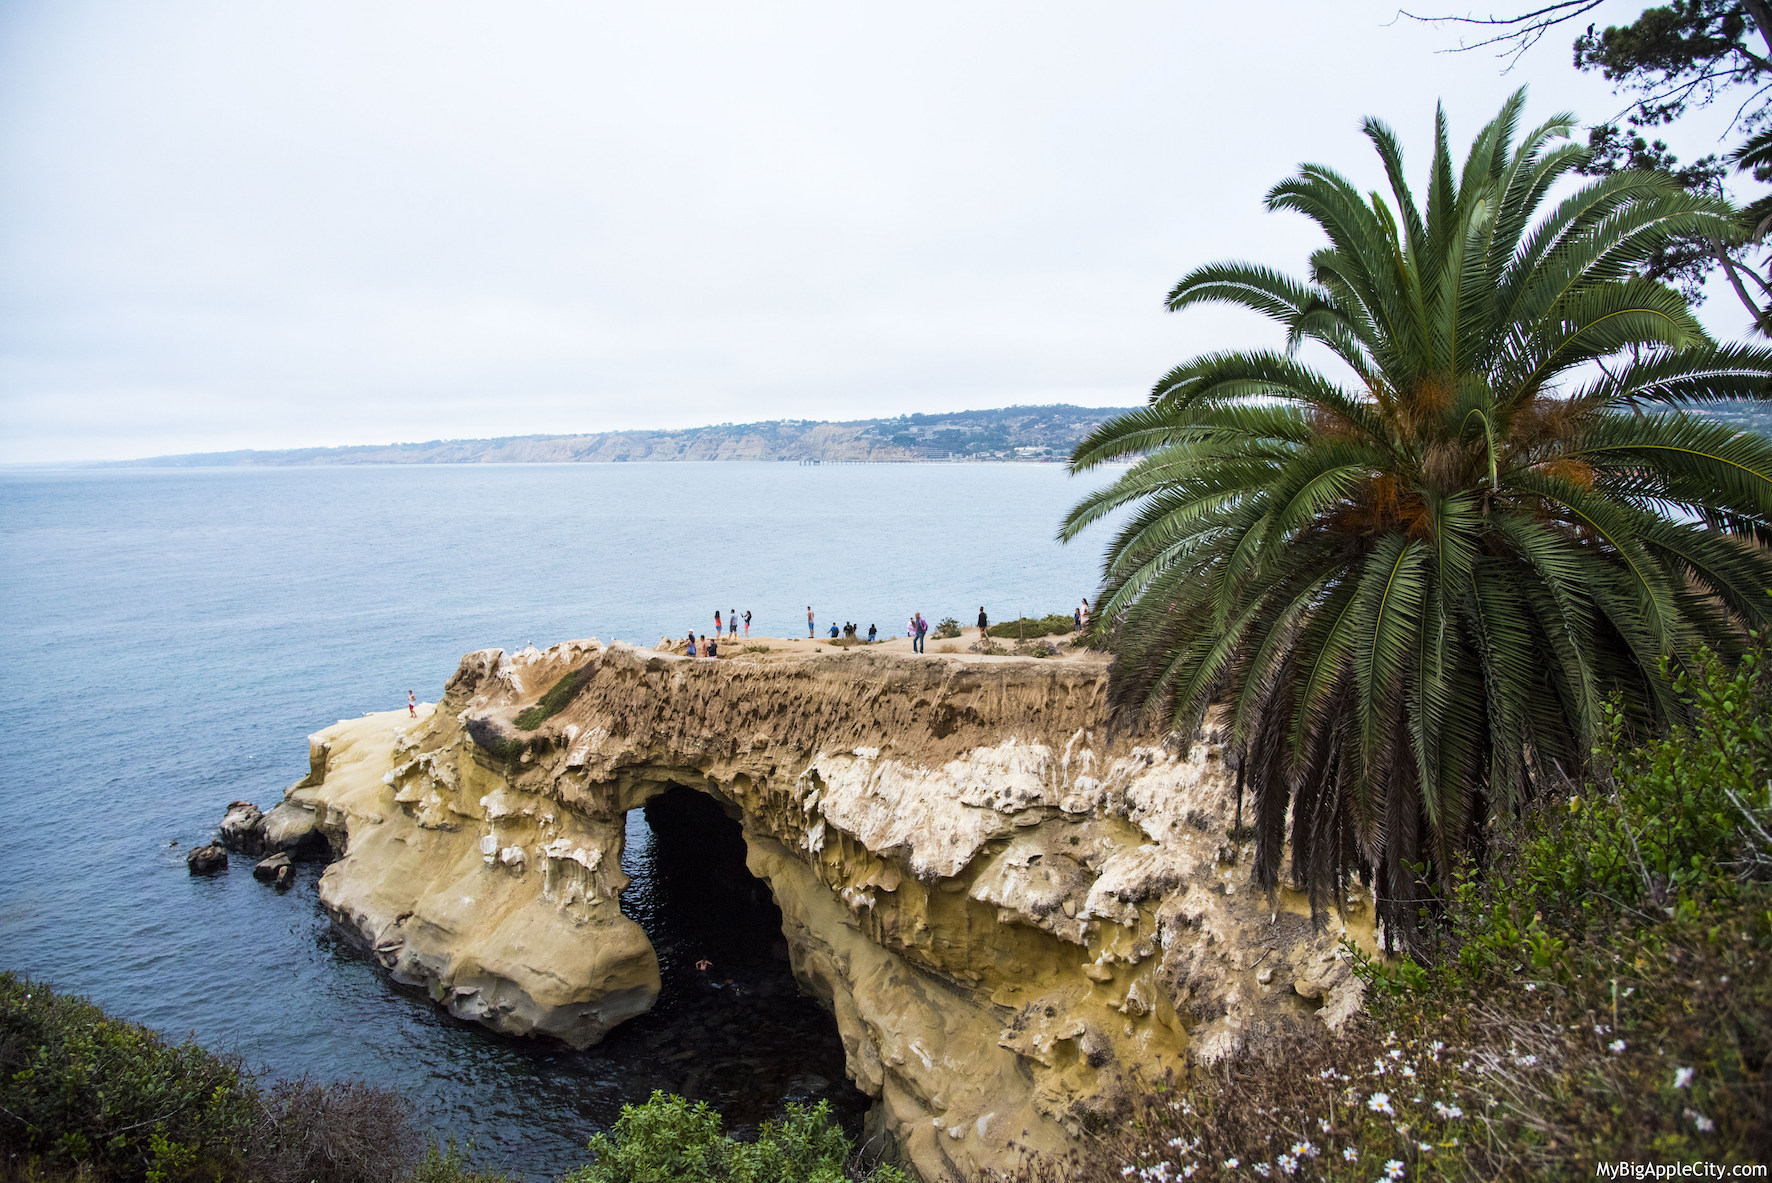 La-Jolla-San-Diego-Travel-Blogger-USA-MyBigAppleCity